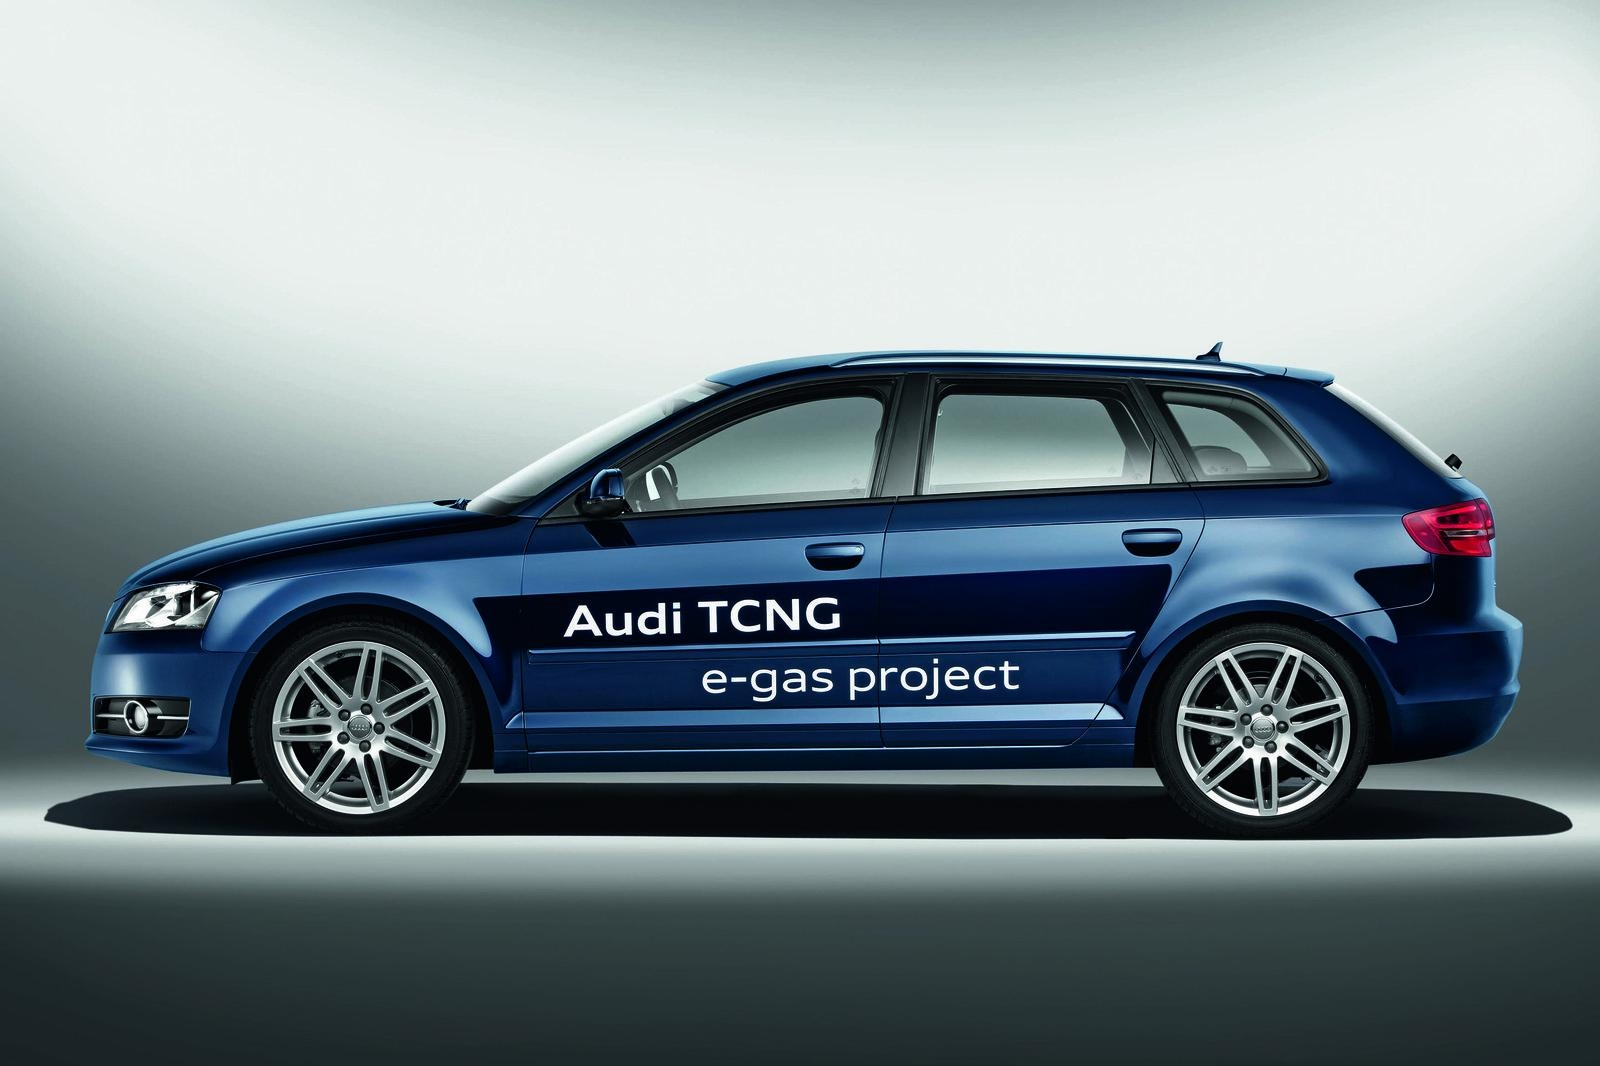 audi a3 tcng e gas project autofans. Black Bedroom Furniture Sets. Home Design Ideas